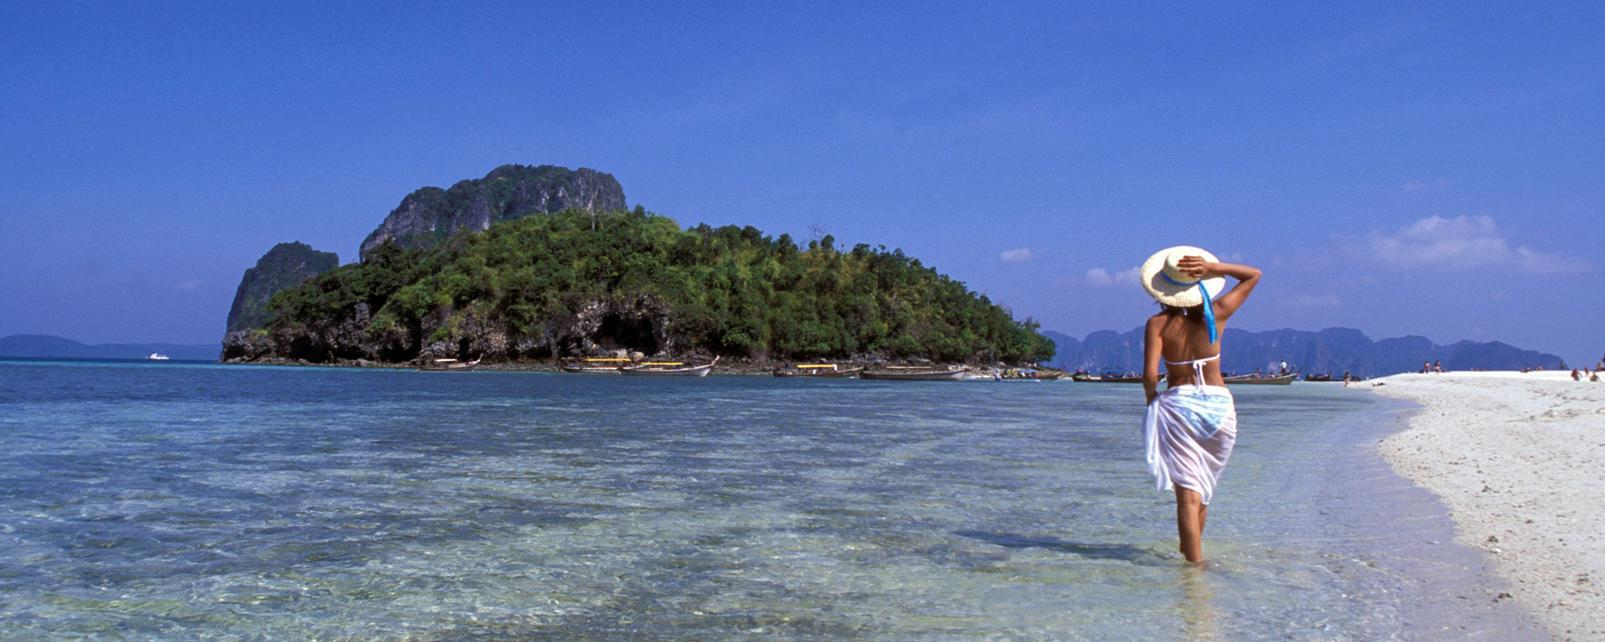 weather forecast krabi in december